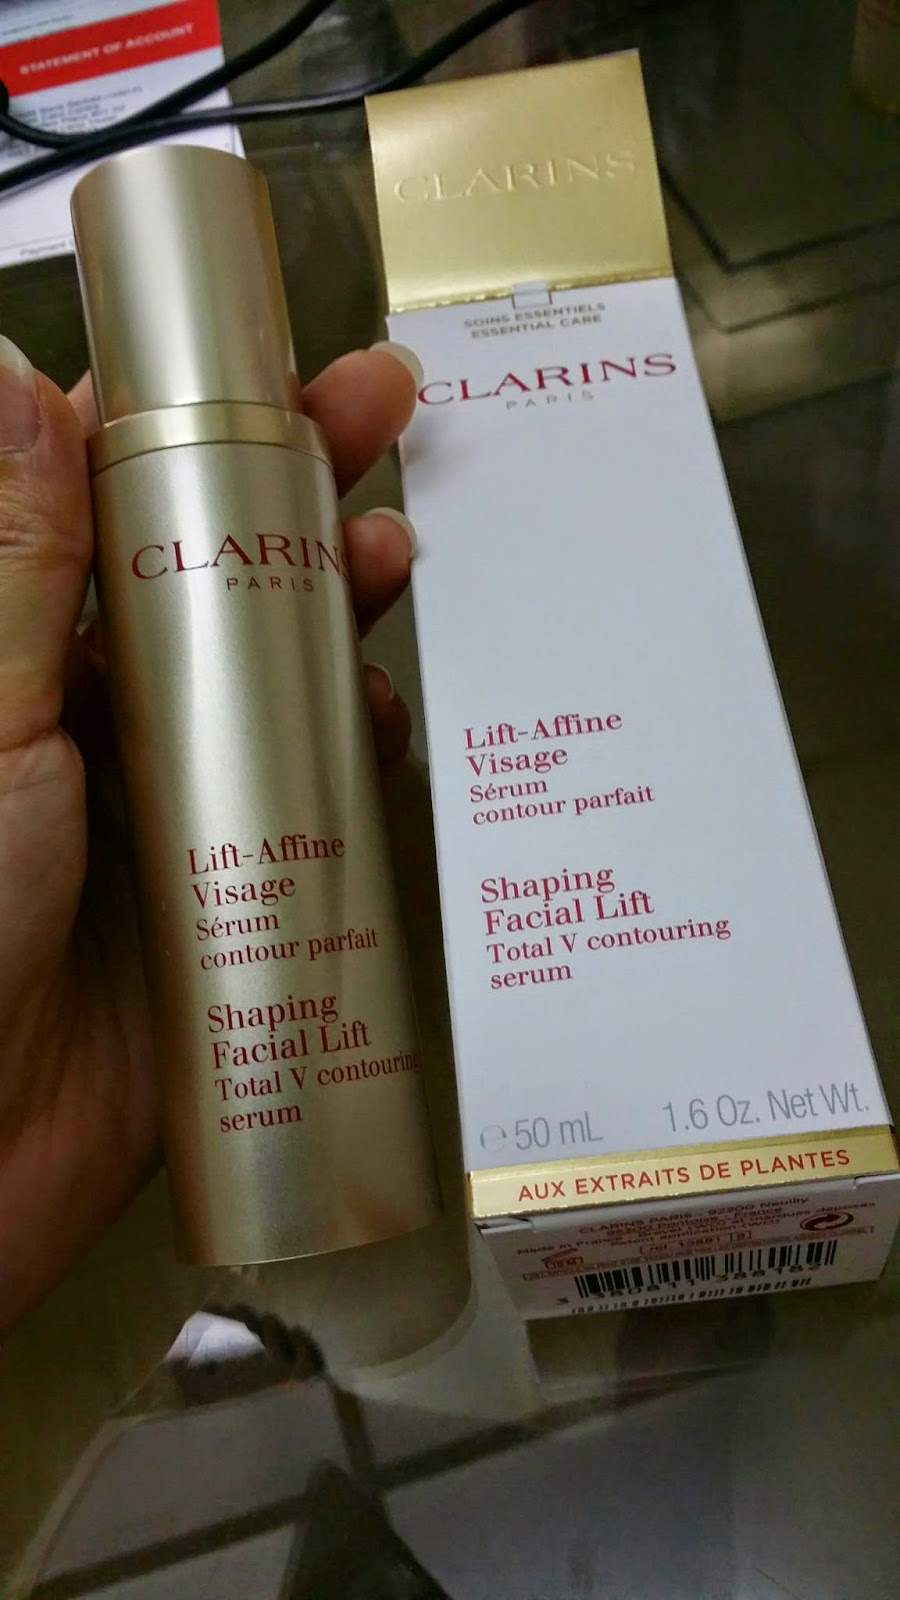 Clarins Shaping Facial Lift Total V Contouring Serum New Version 10 10ml The Formula Affine Visage For A Distinctive